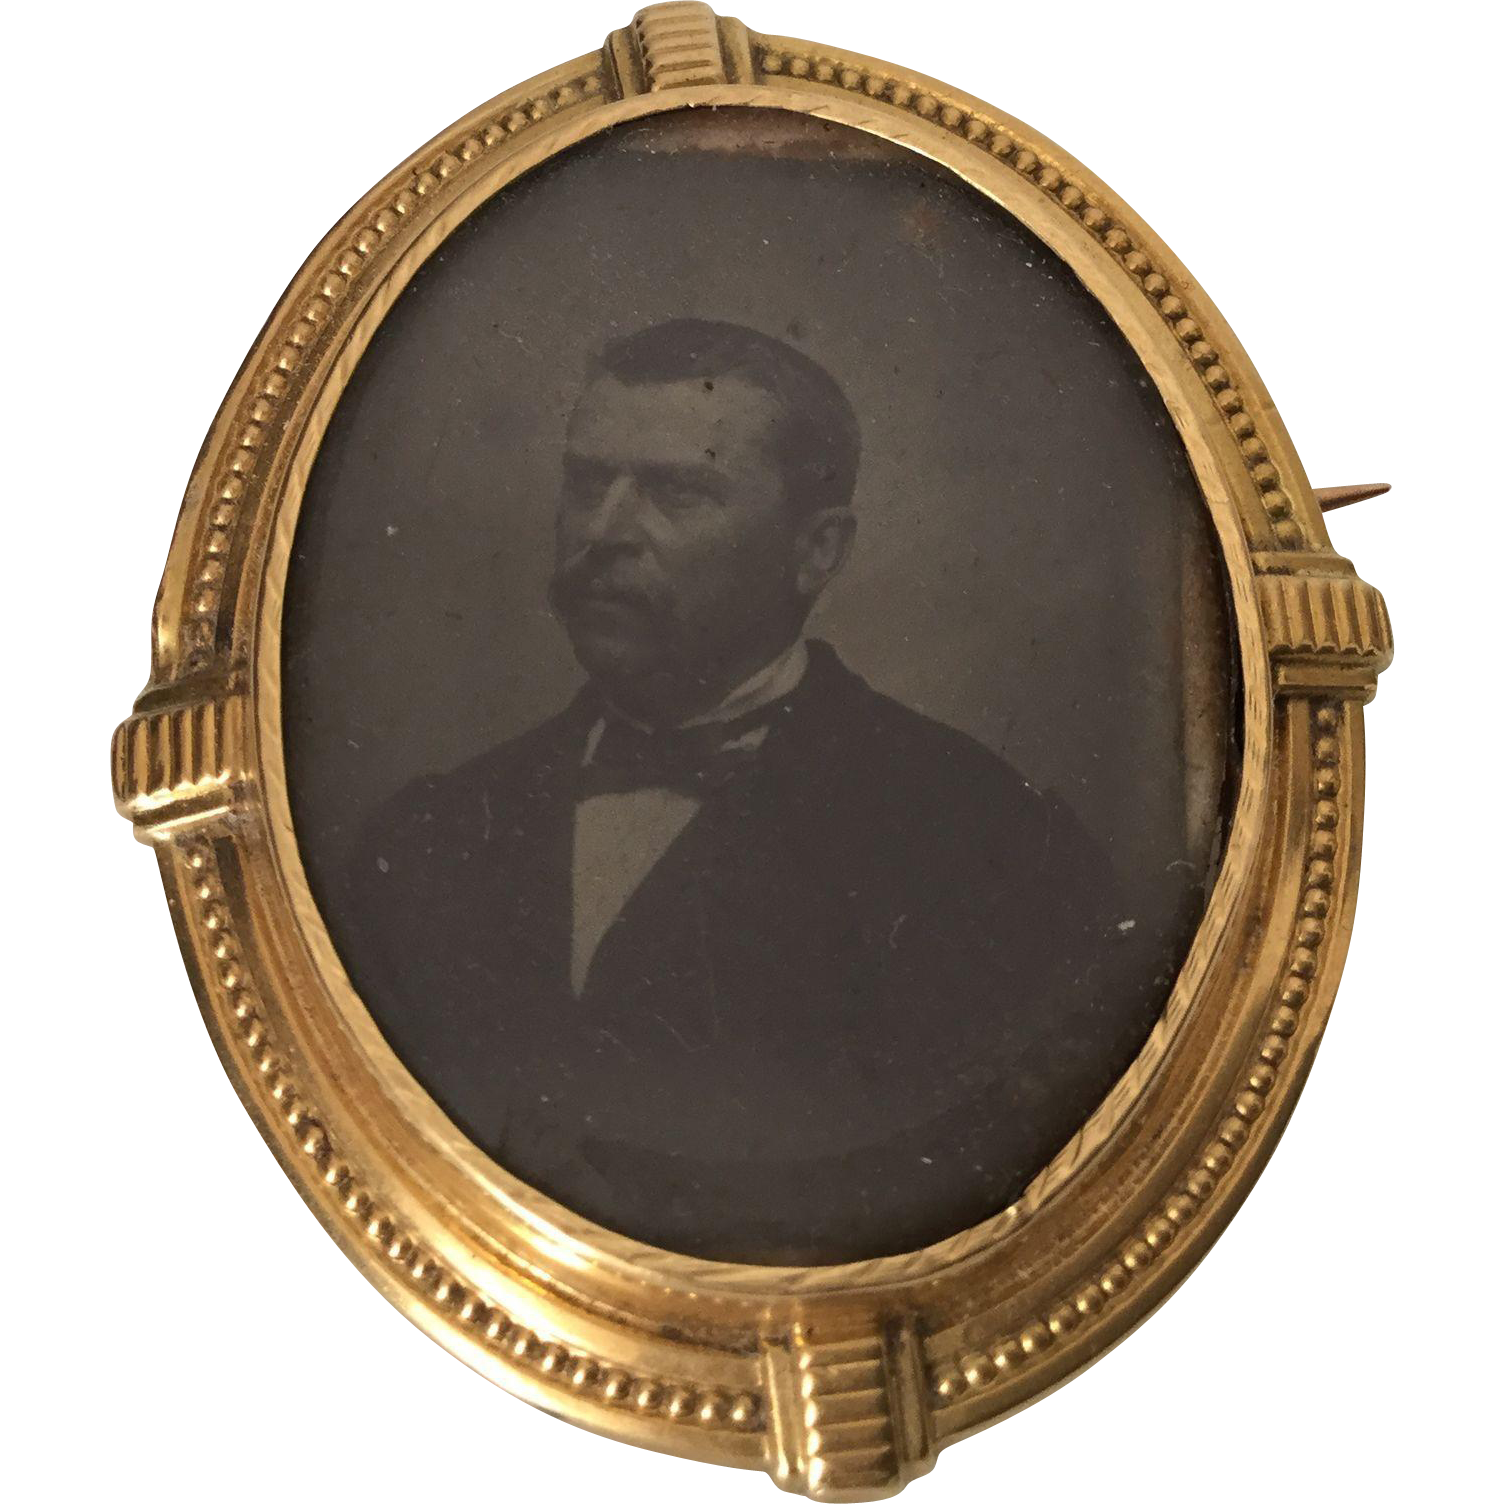 French Victorian 18K Yellow Gold Brooch With Man Photo 19th Century circa Teddy Roosevelt ?